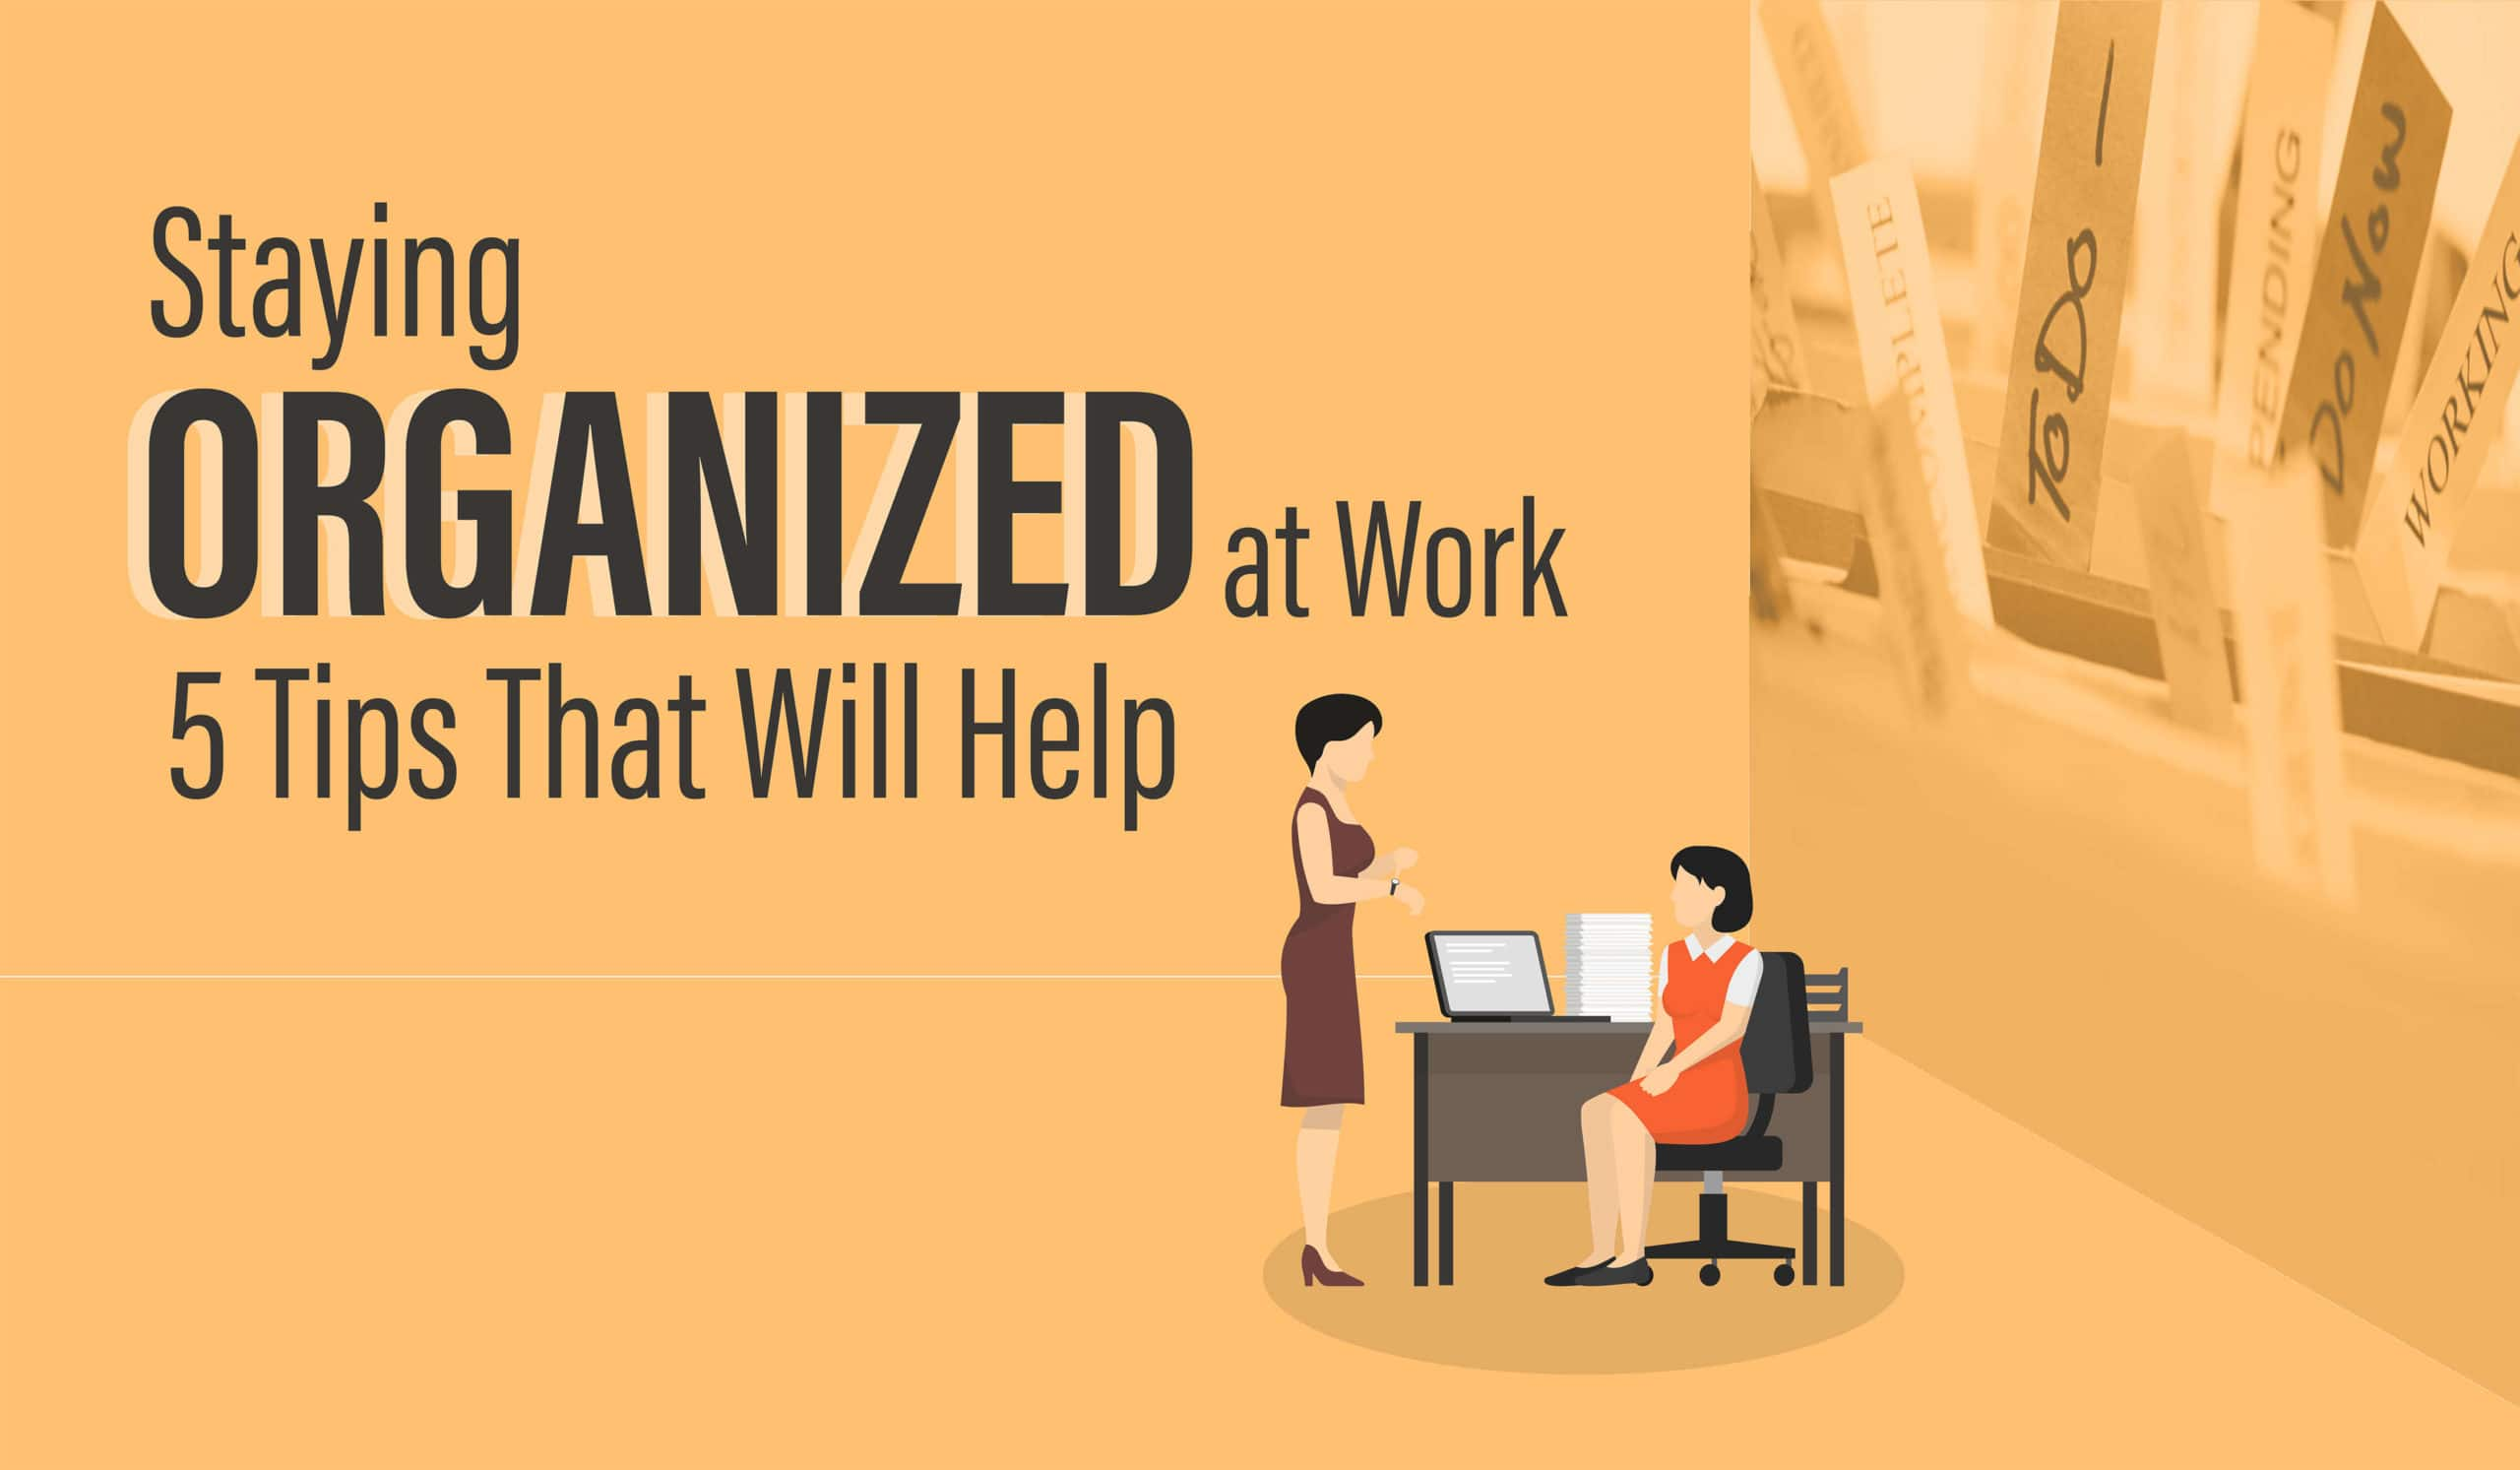 staying-organized at-work-5-tips-that-will-help-2